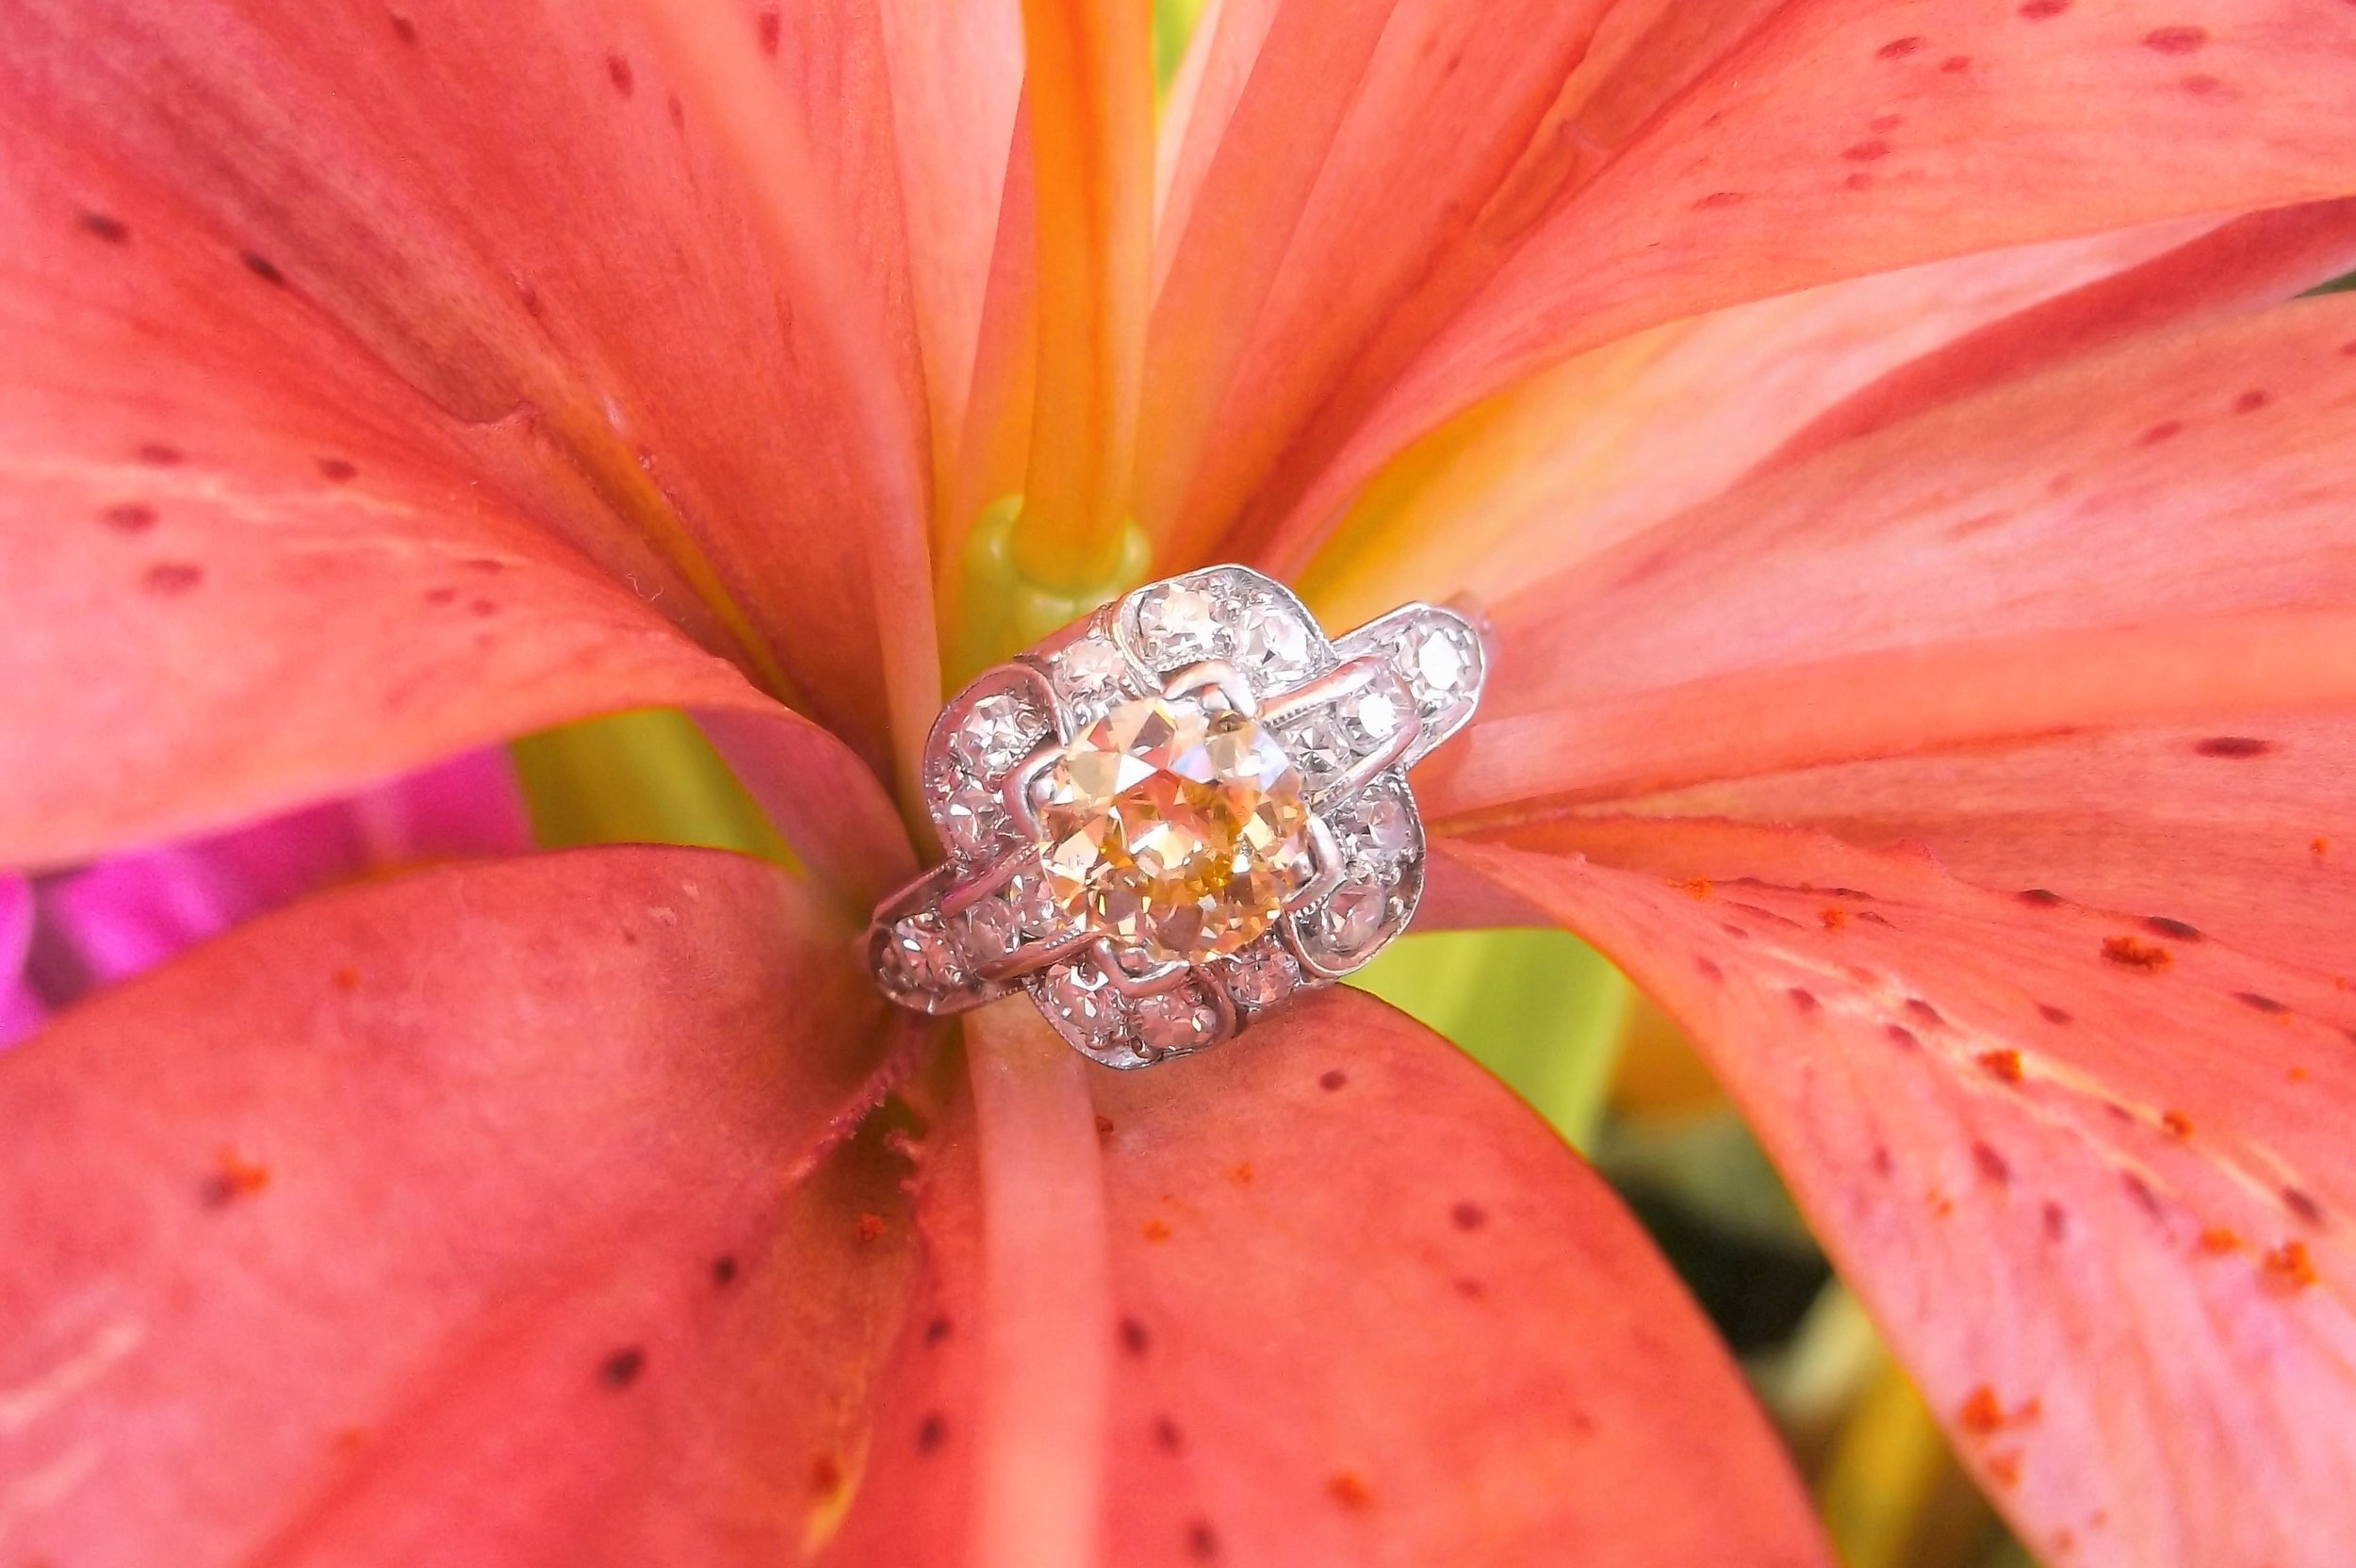 SOLD - Whimsical 0.62 carat Old Mine cut diamond set in an Art Deco diamond and platinum mounting.